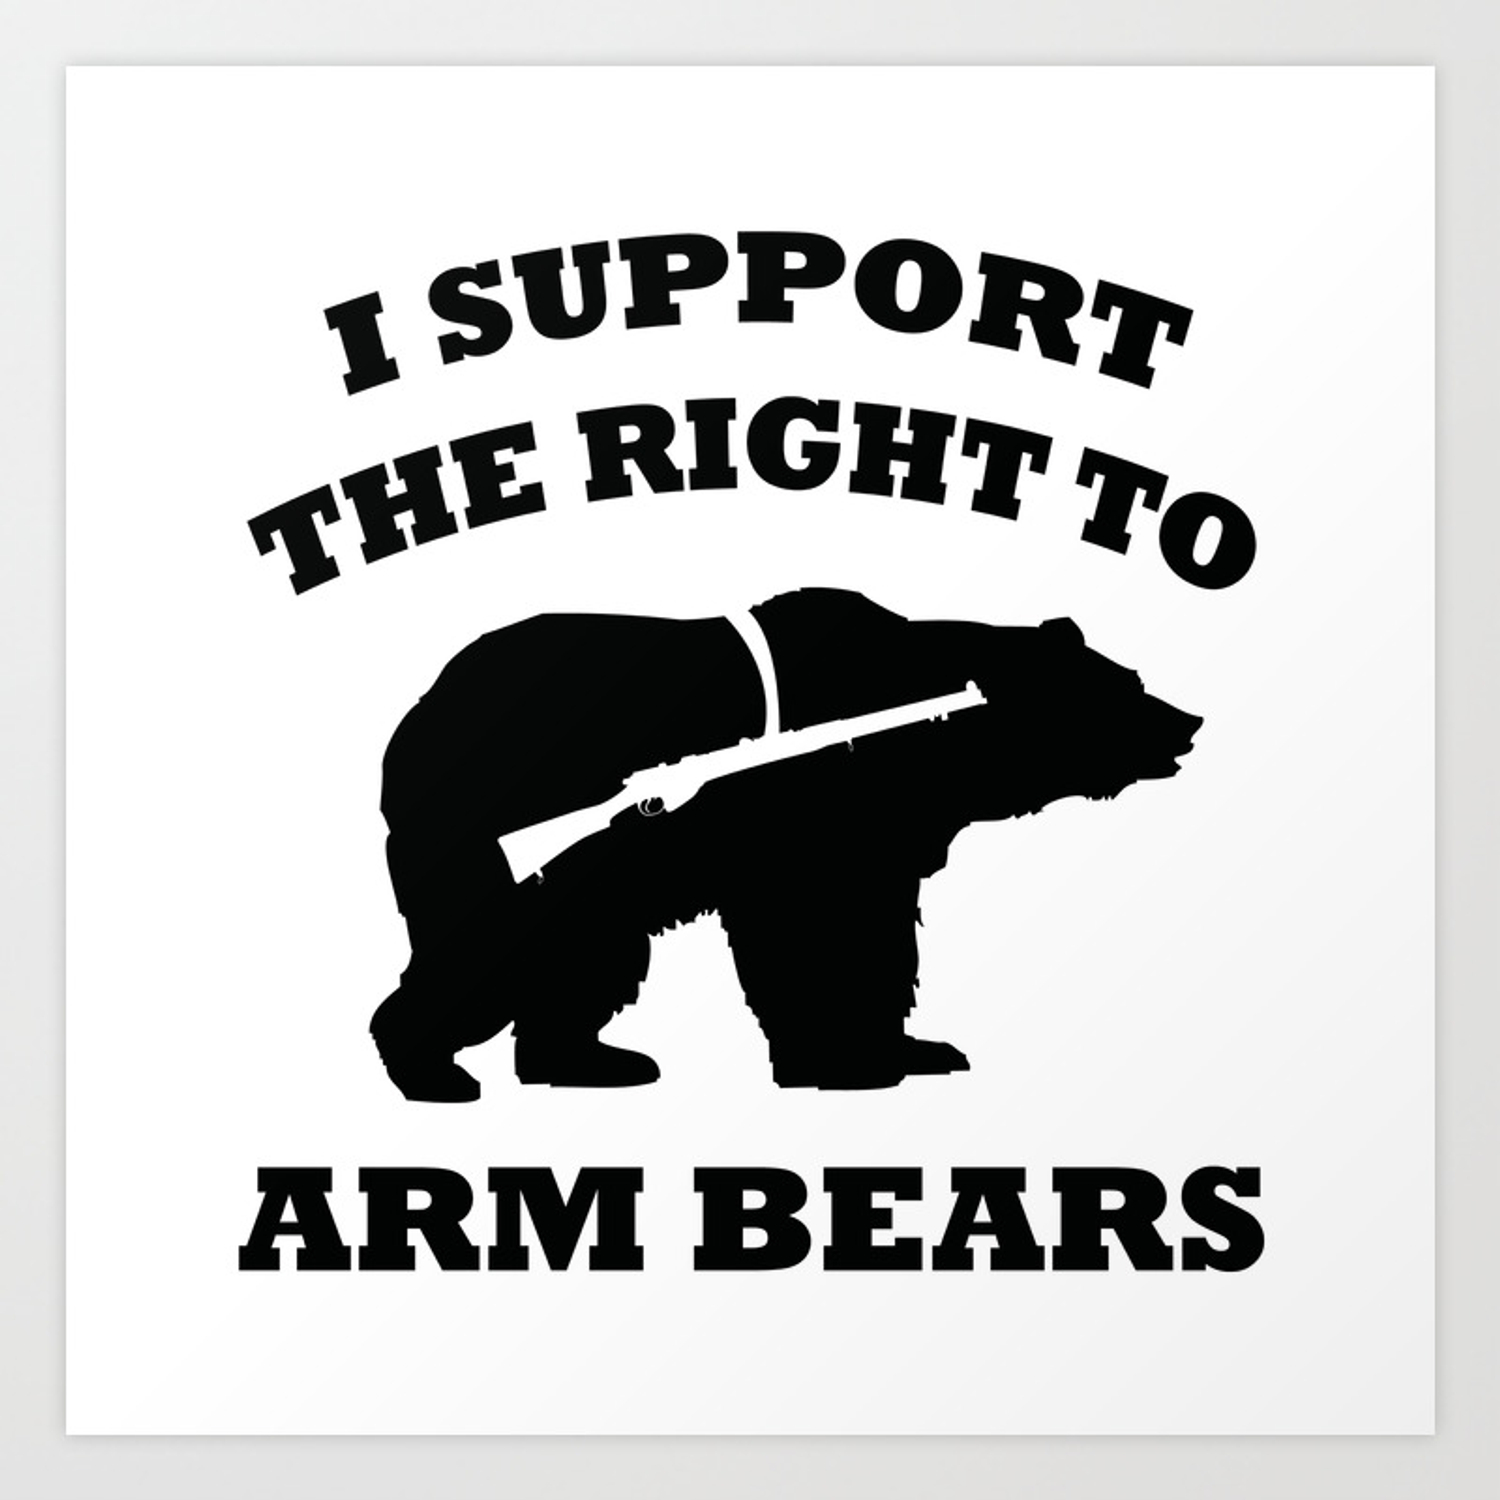 I also don't get this fanatic Second Amendment demand to fight for the right to arm bears. For God's sake, they don't even have opposable thumbs. How will a bear fire an AK-47?